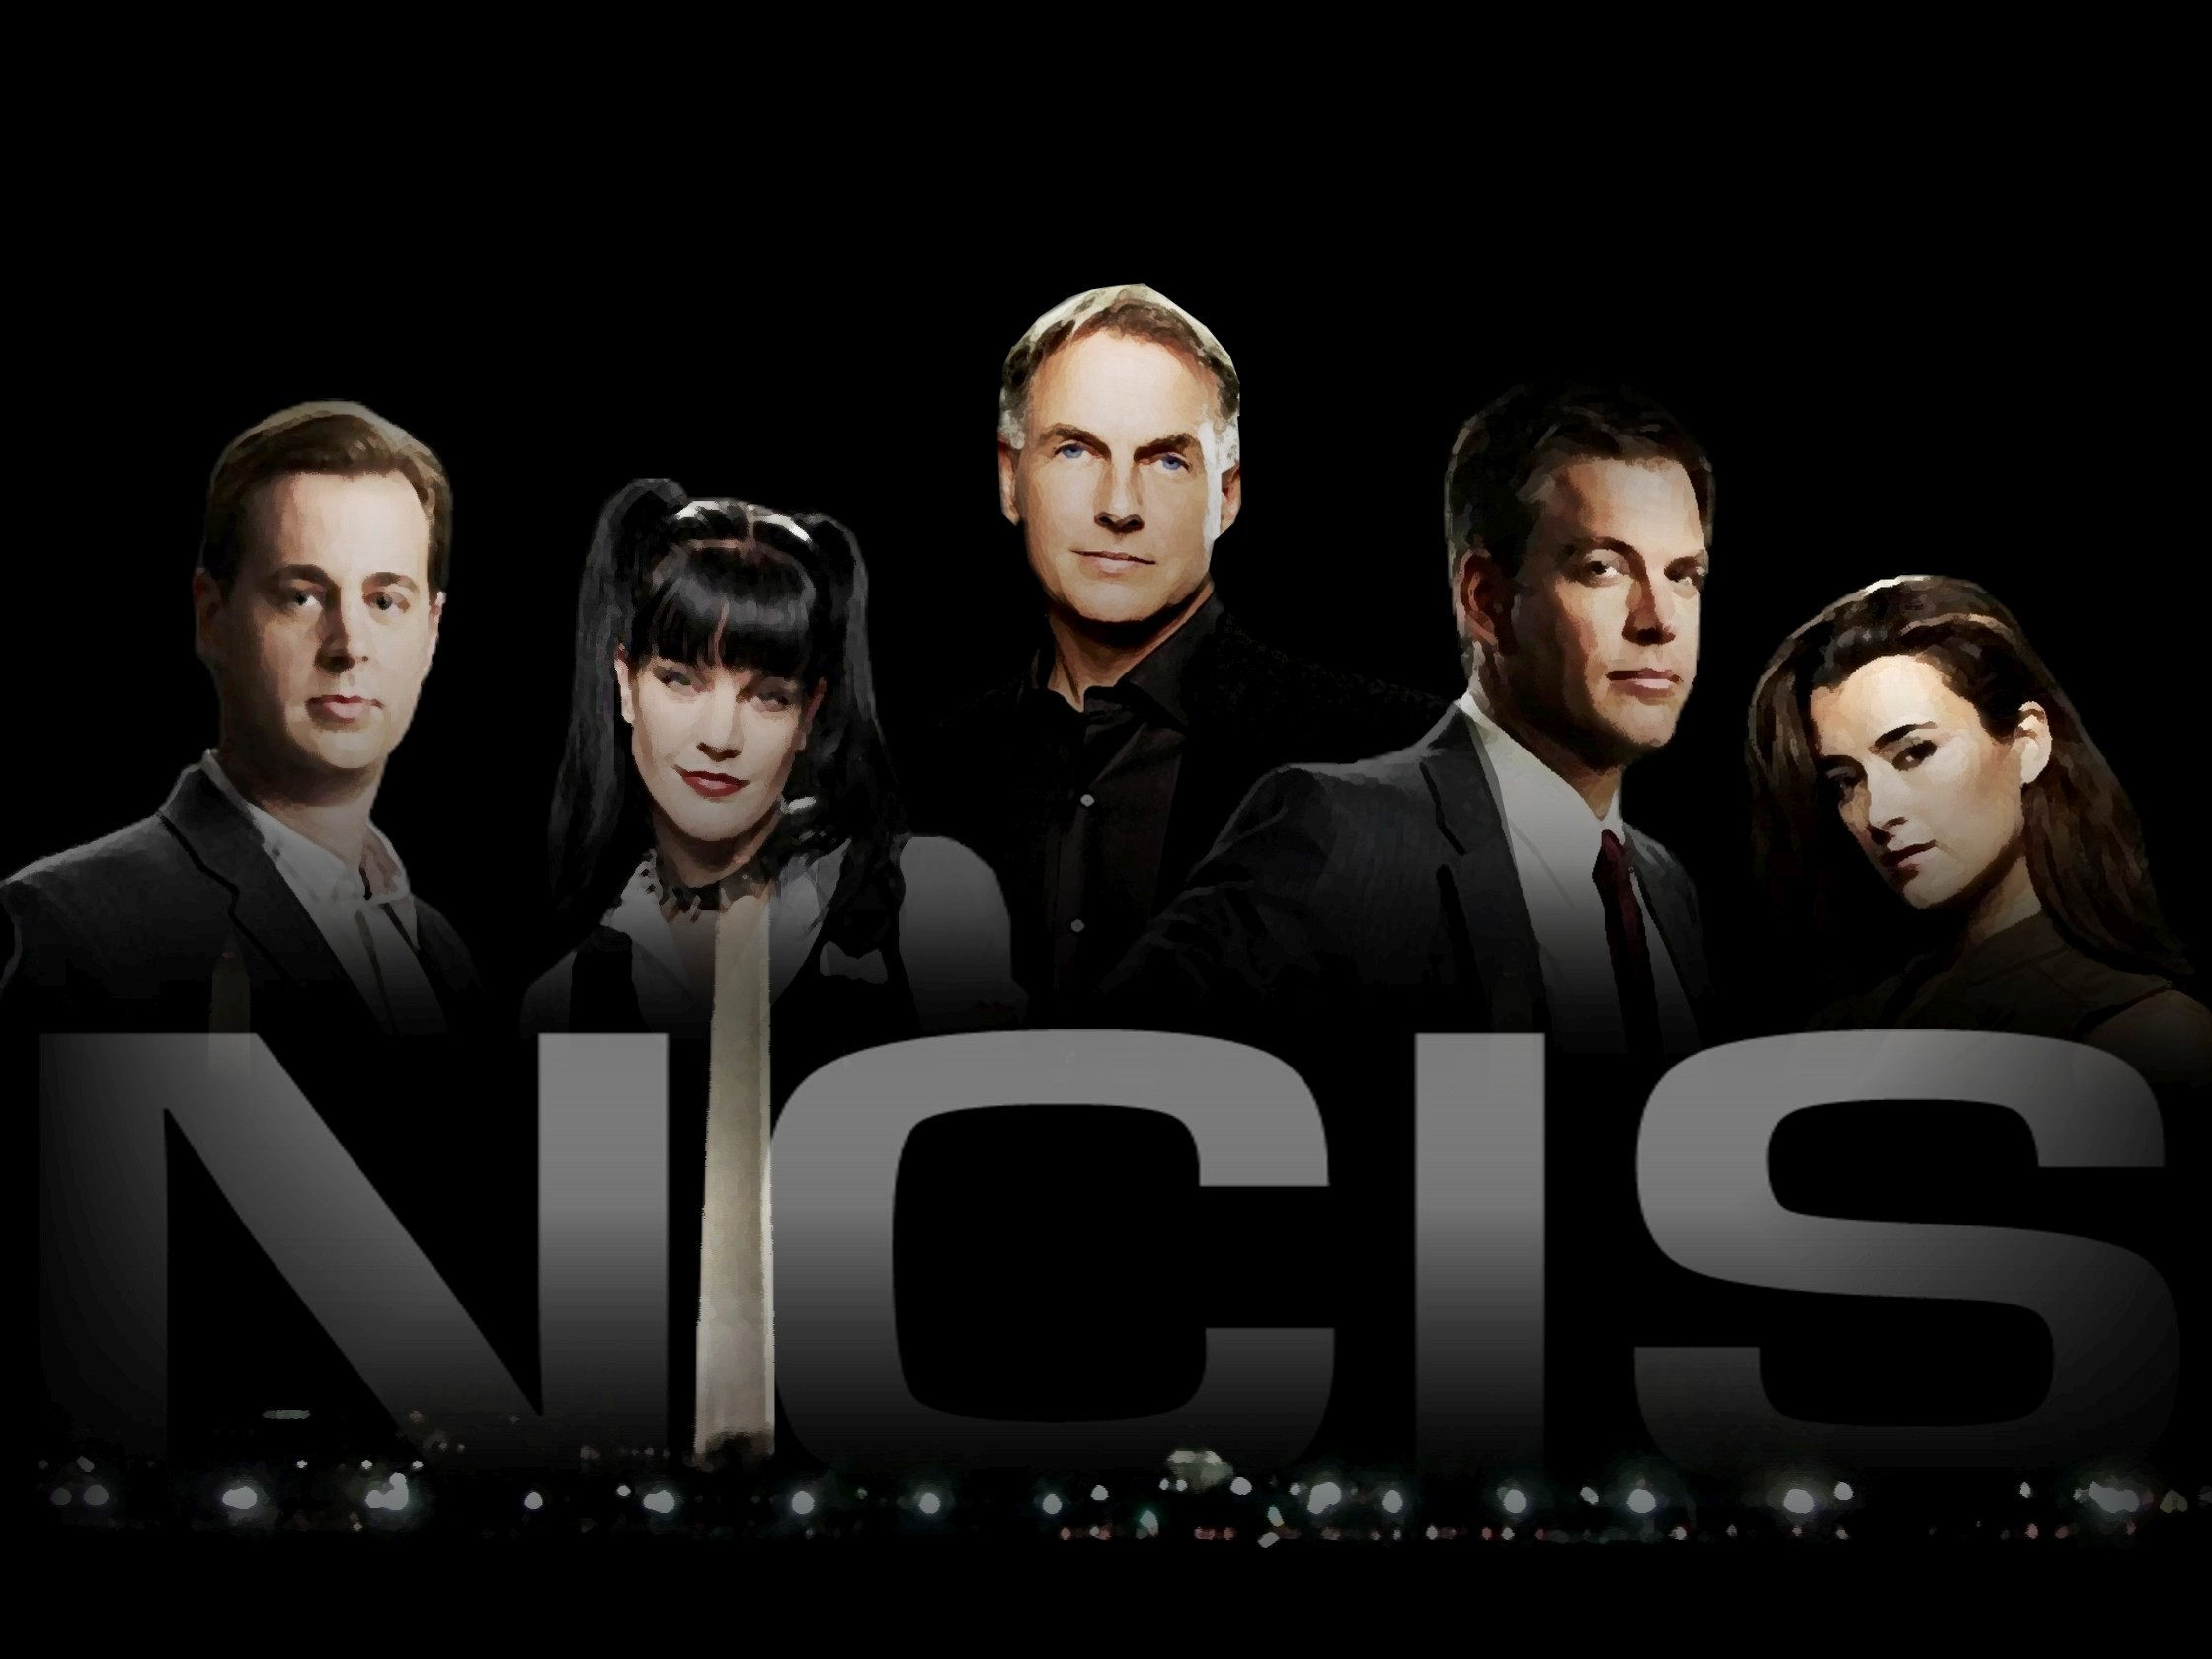 http://images2.fanpop.com/images/photos/6800000/NCIS-ncis-6825468-2240-1680.jpg